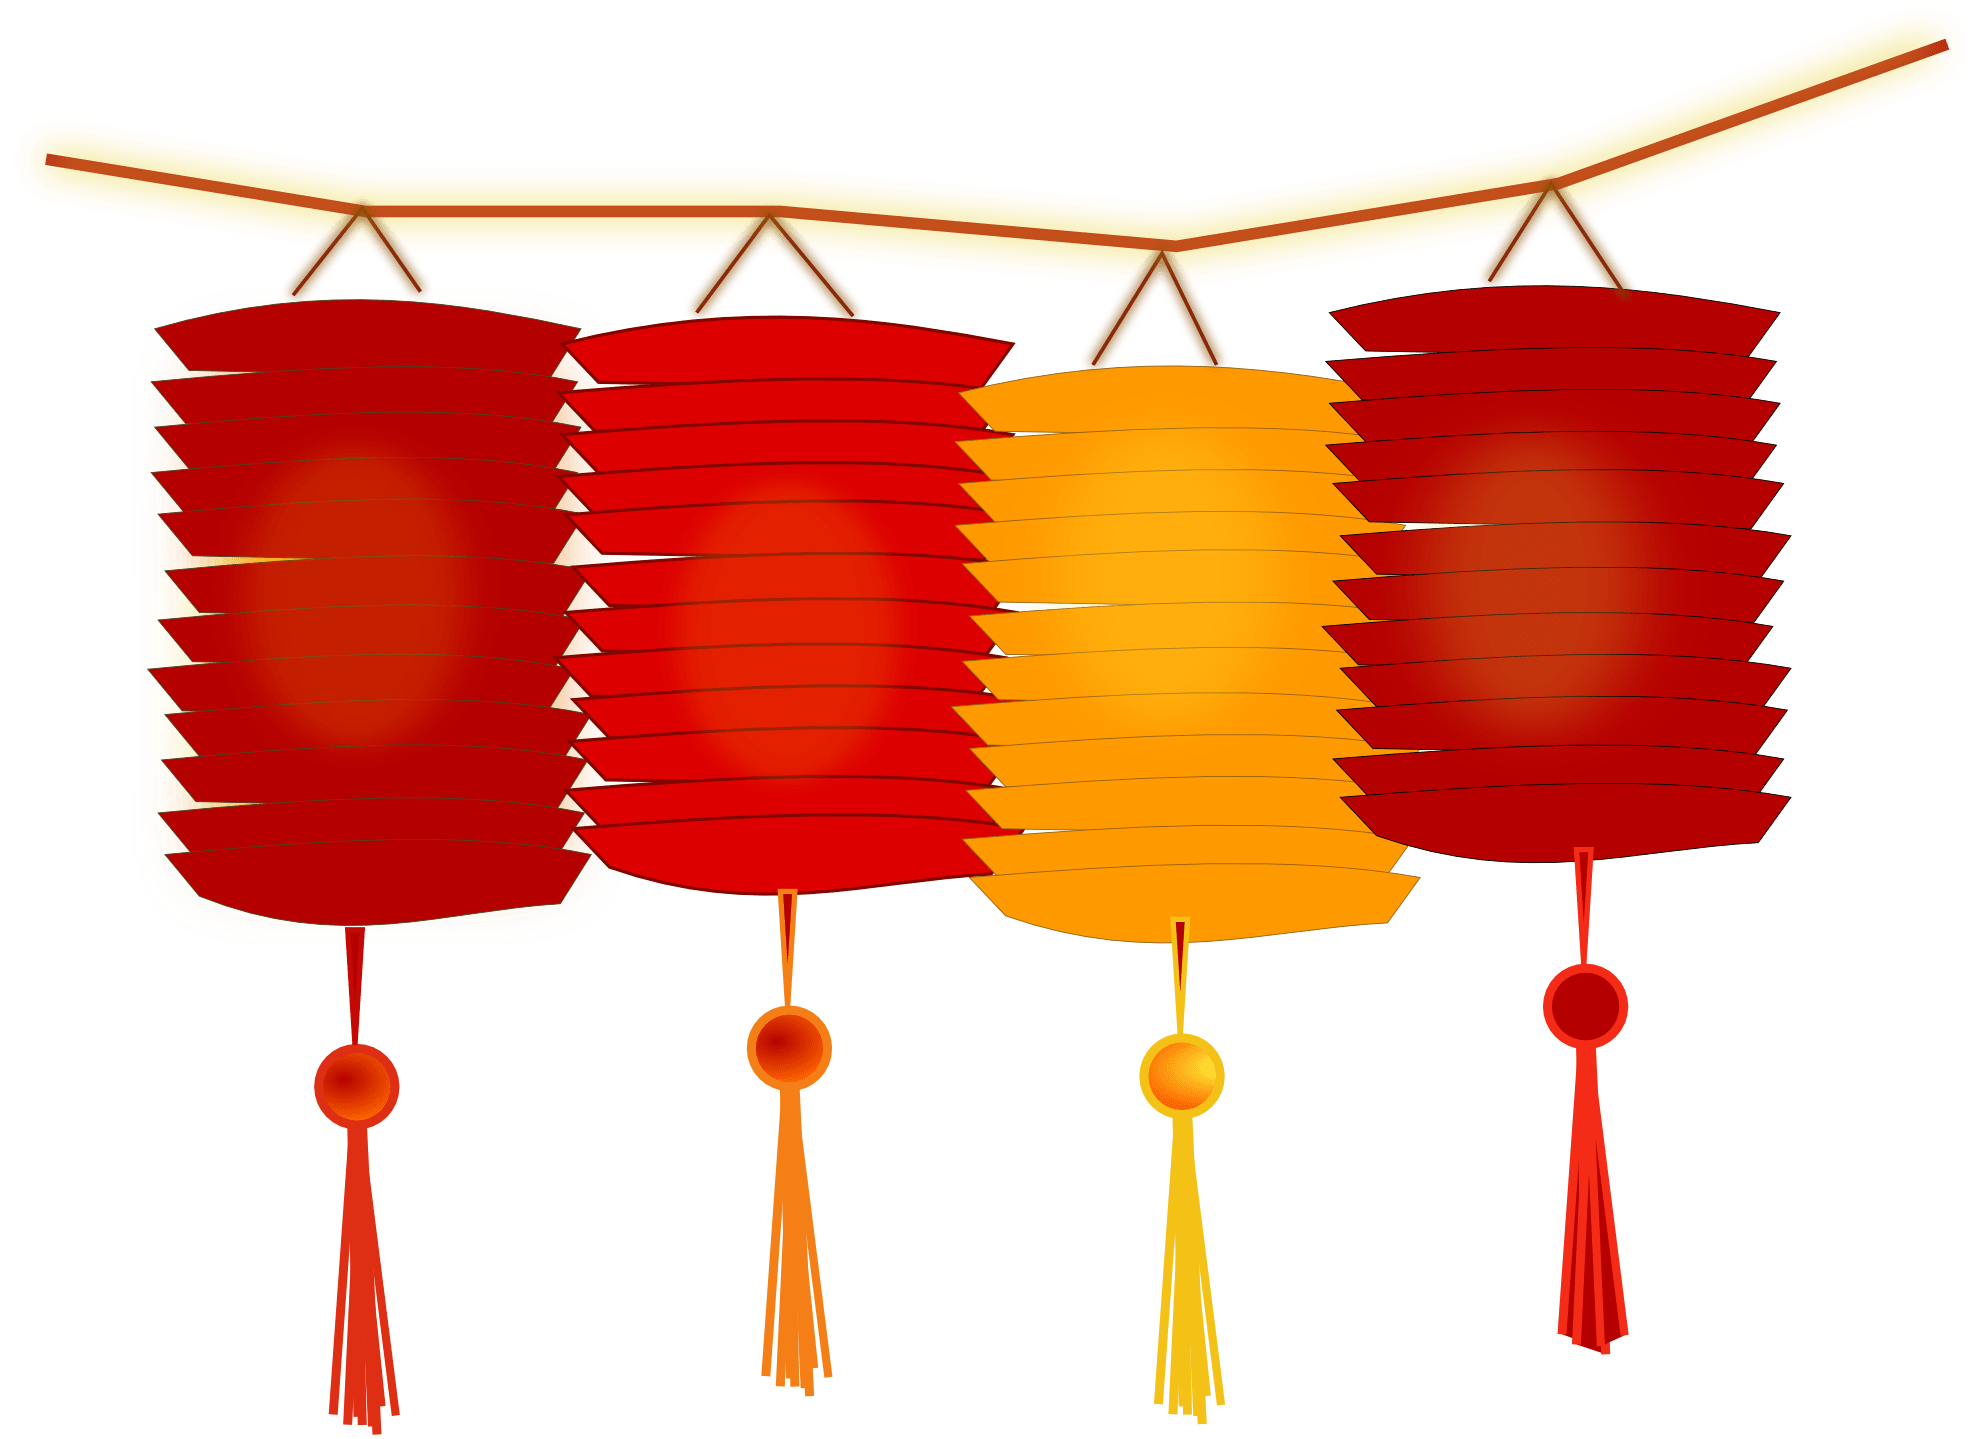 Lanterns For Chinese New Year transparent PNG.